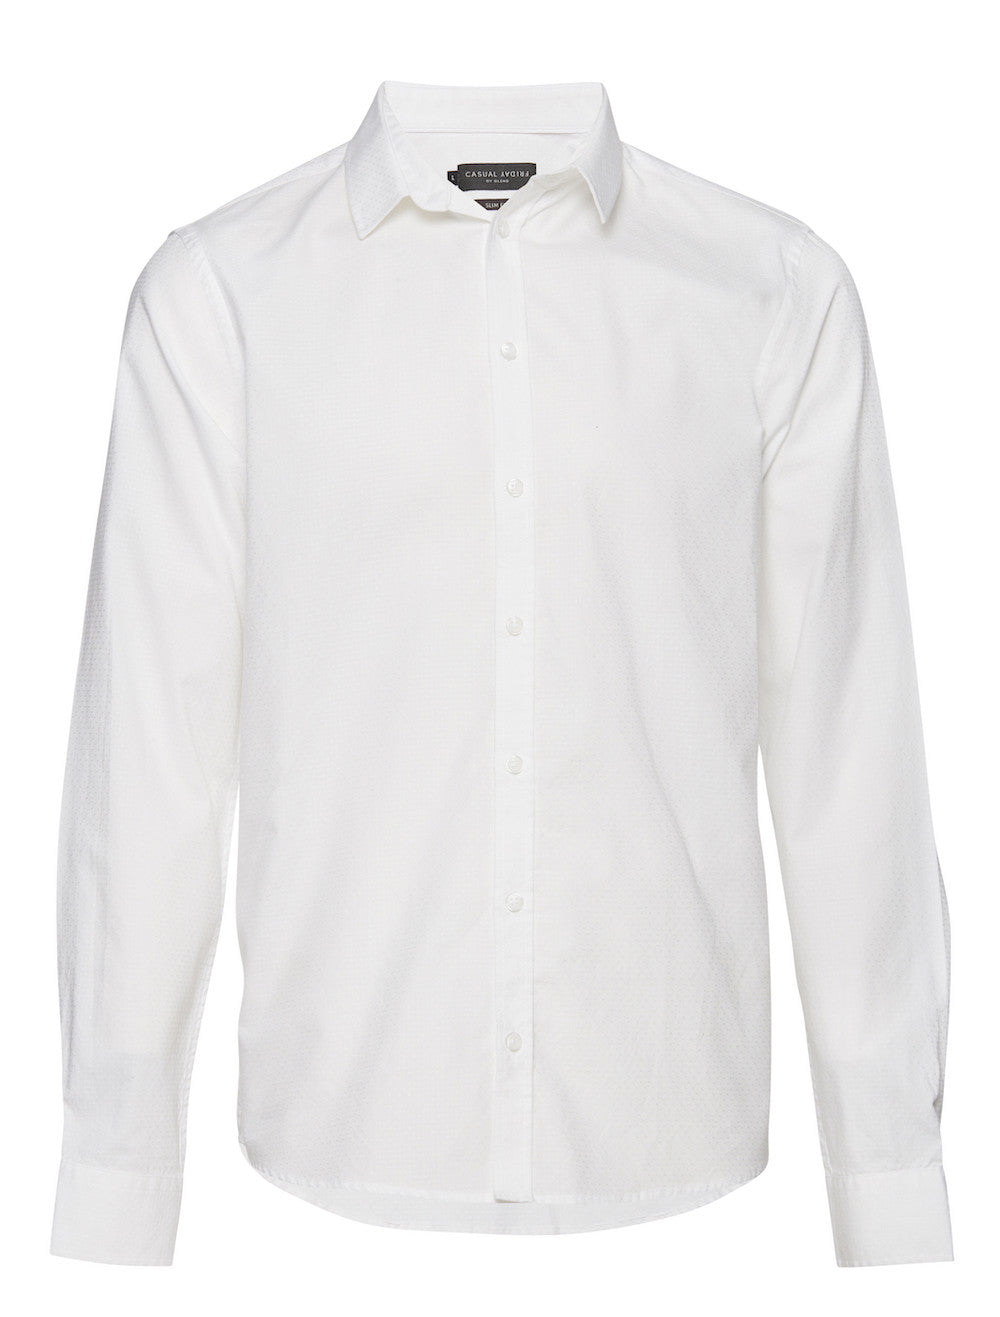 CASUAL FRIDAY - Shirt Sleeved WhiteRe